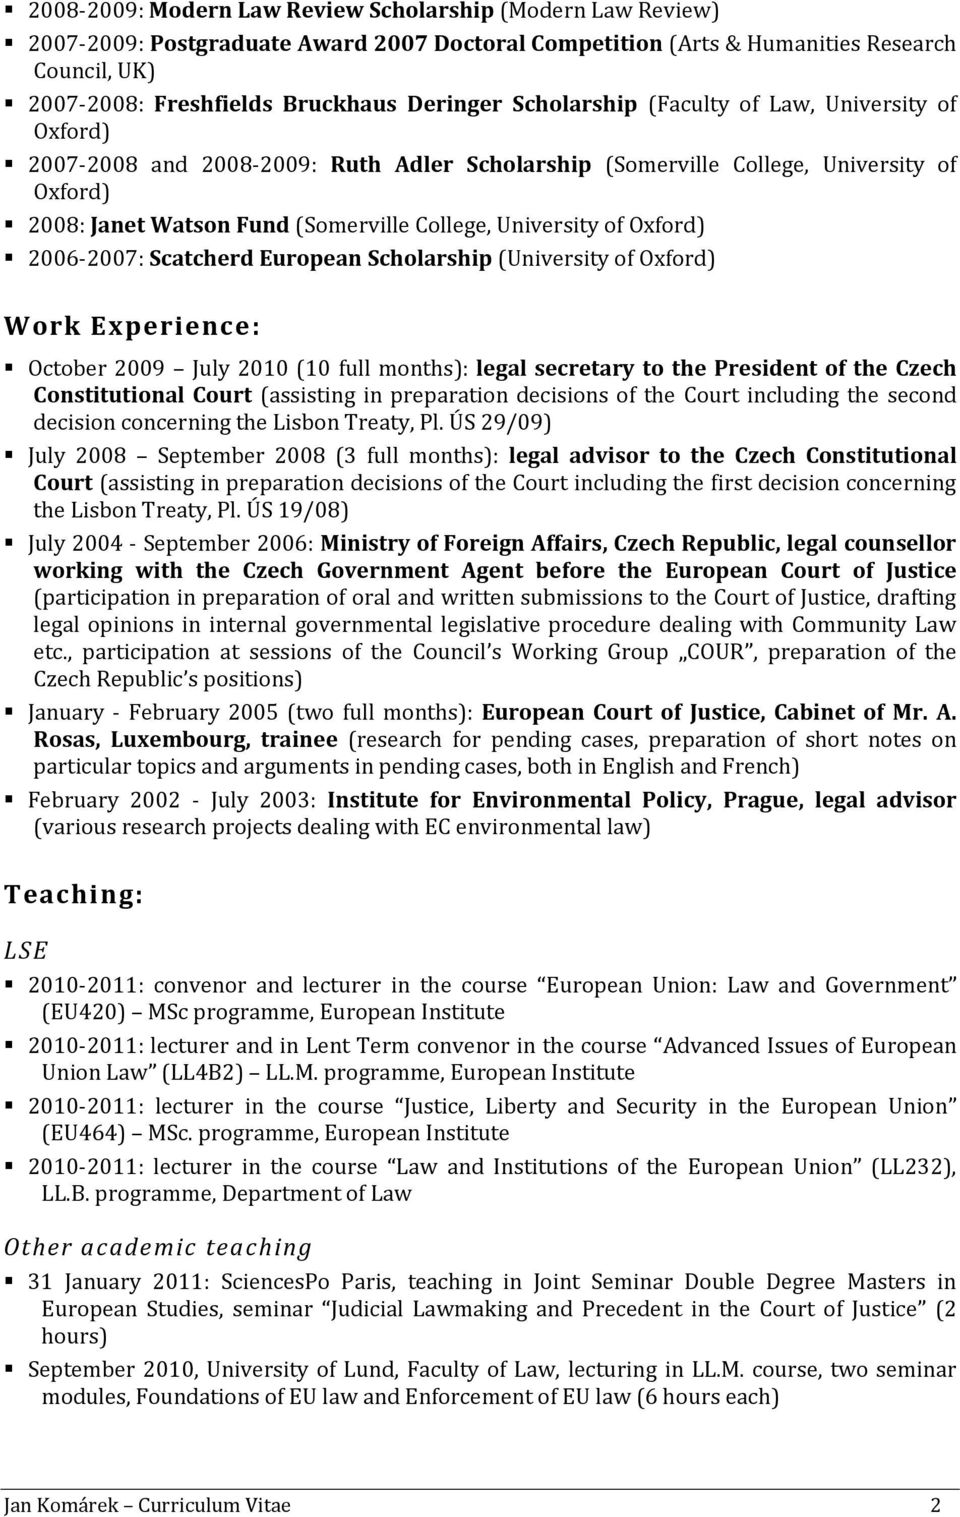 of Oxford) 2006-2007: Scatcherd European Scholarship (University of Oxford) Work Experience: October 2009 July 2010 (10 full months): legal secretary to the President of the Czech Constitutional